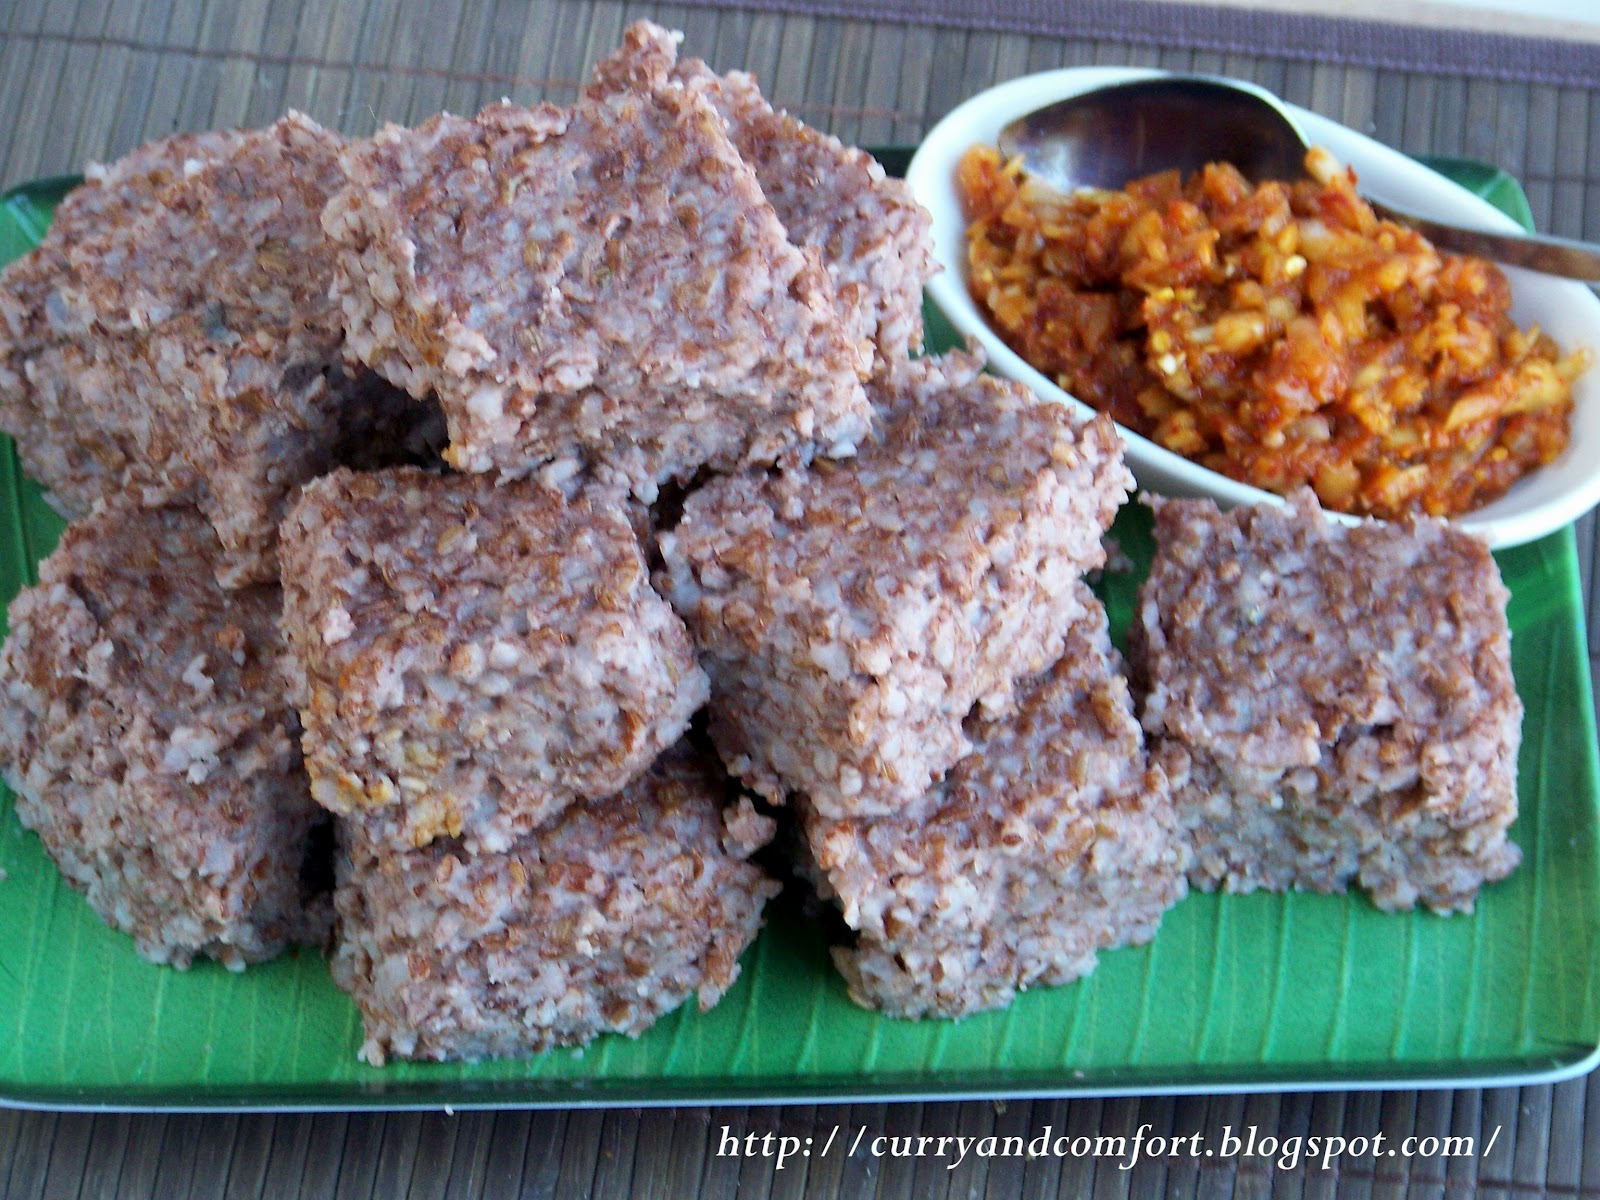 Kitchen simmer world on a plate auspicious food for a prosperous sri lankan kiri bath pronounced kiree buth translates in english literally as milk rice is a traditional dish that is served and eaten during forumfinder Choice Image